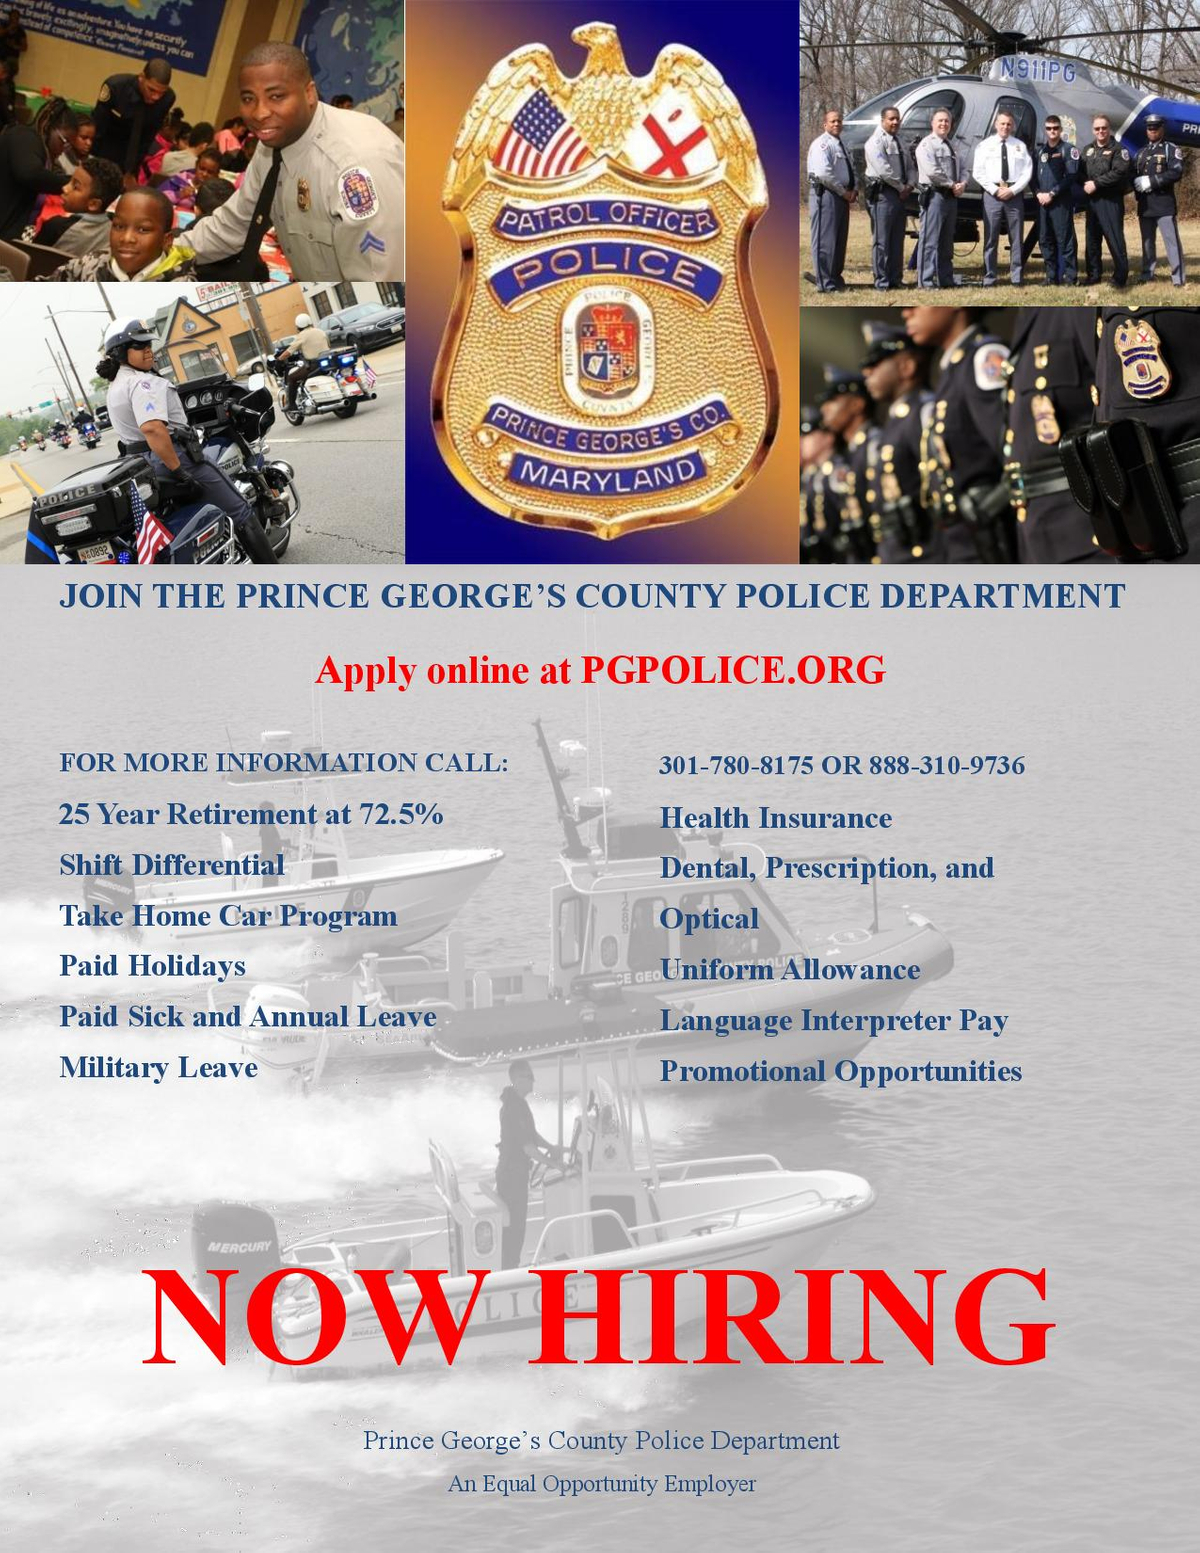 Prince George's County Police Department.jpg